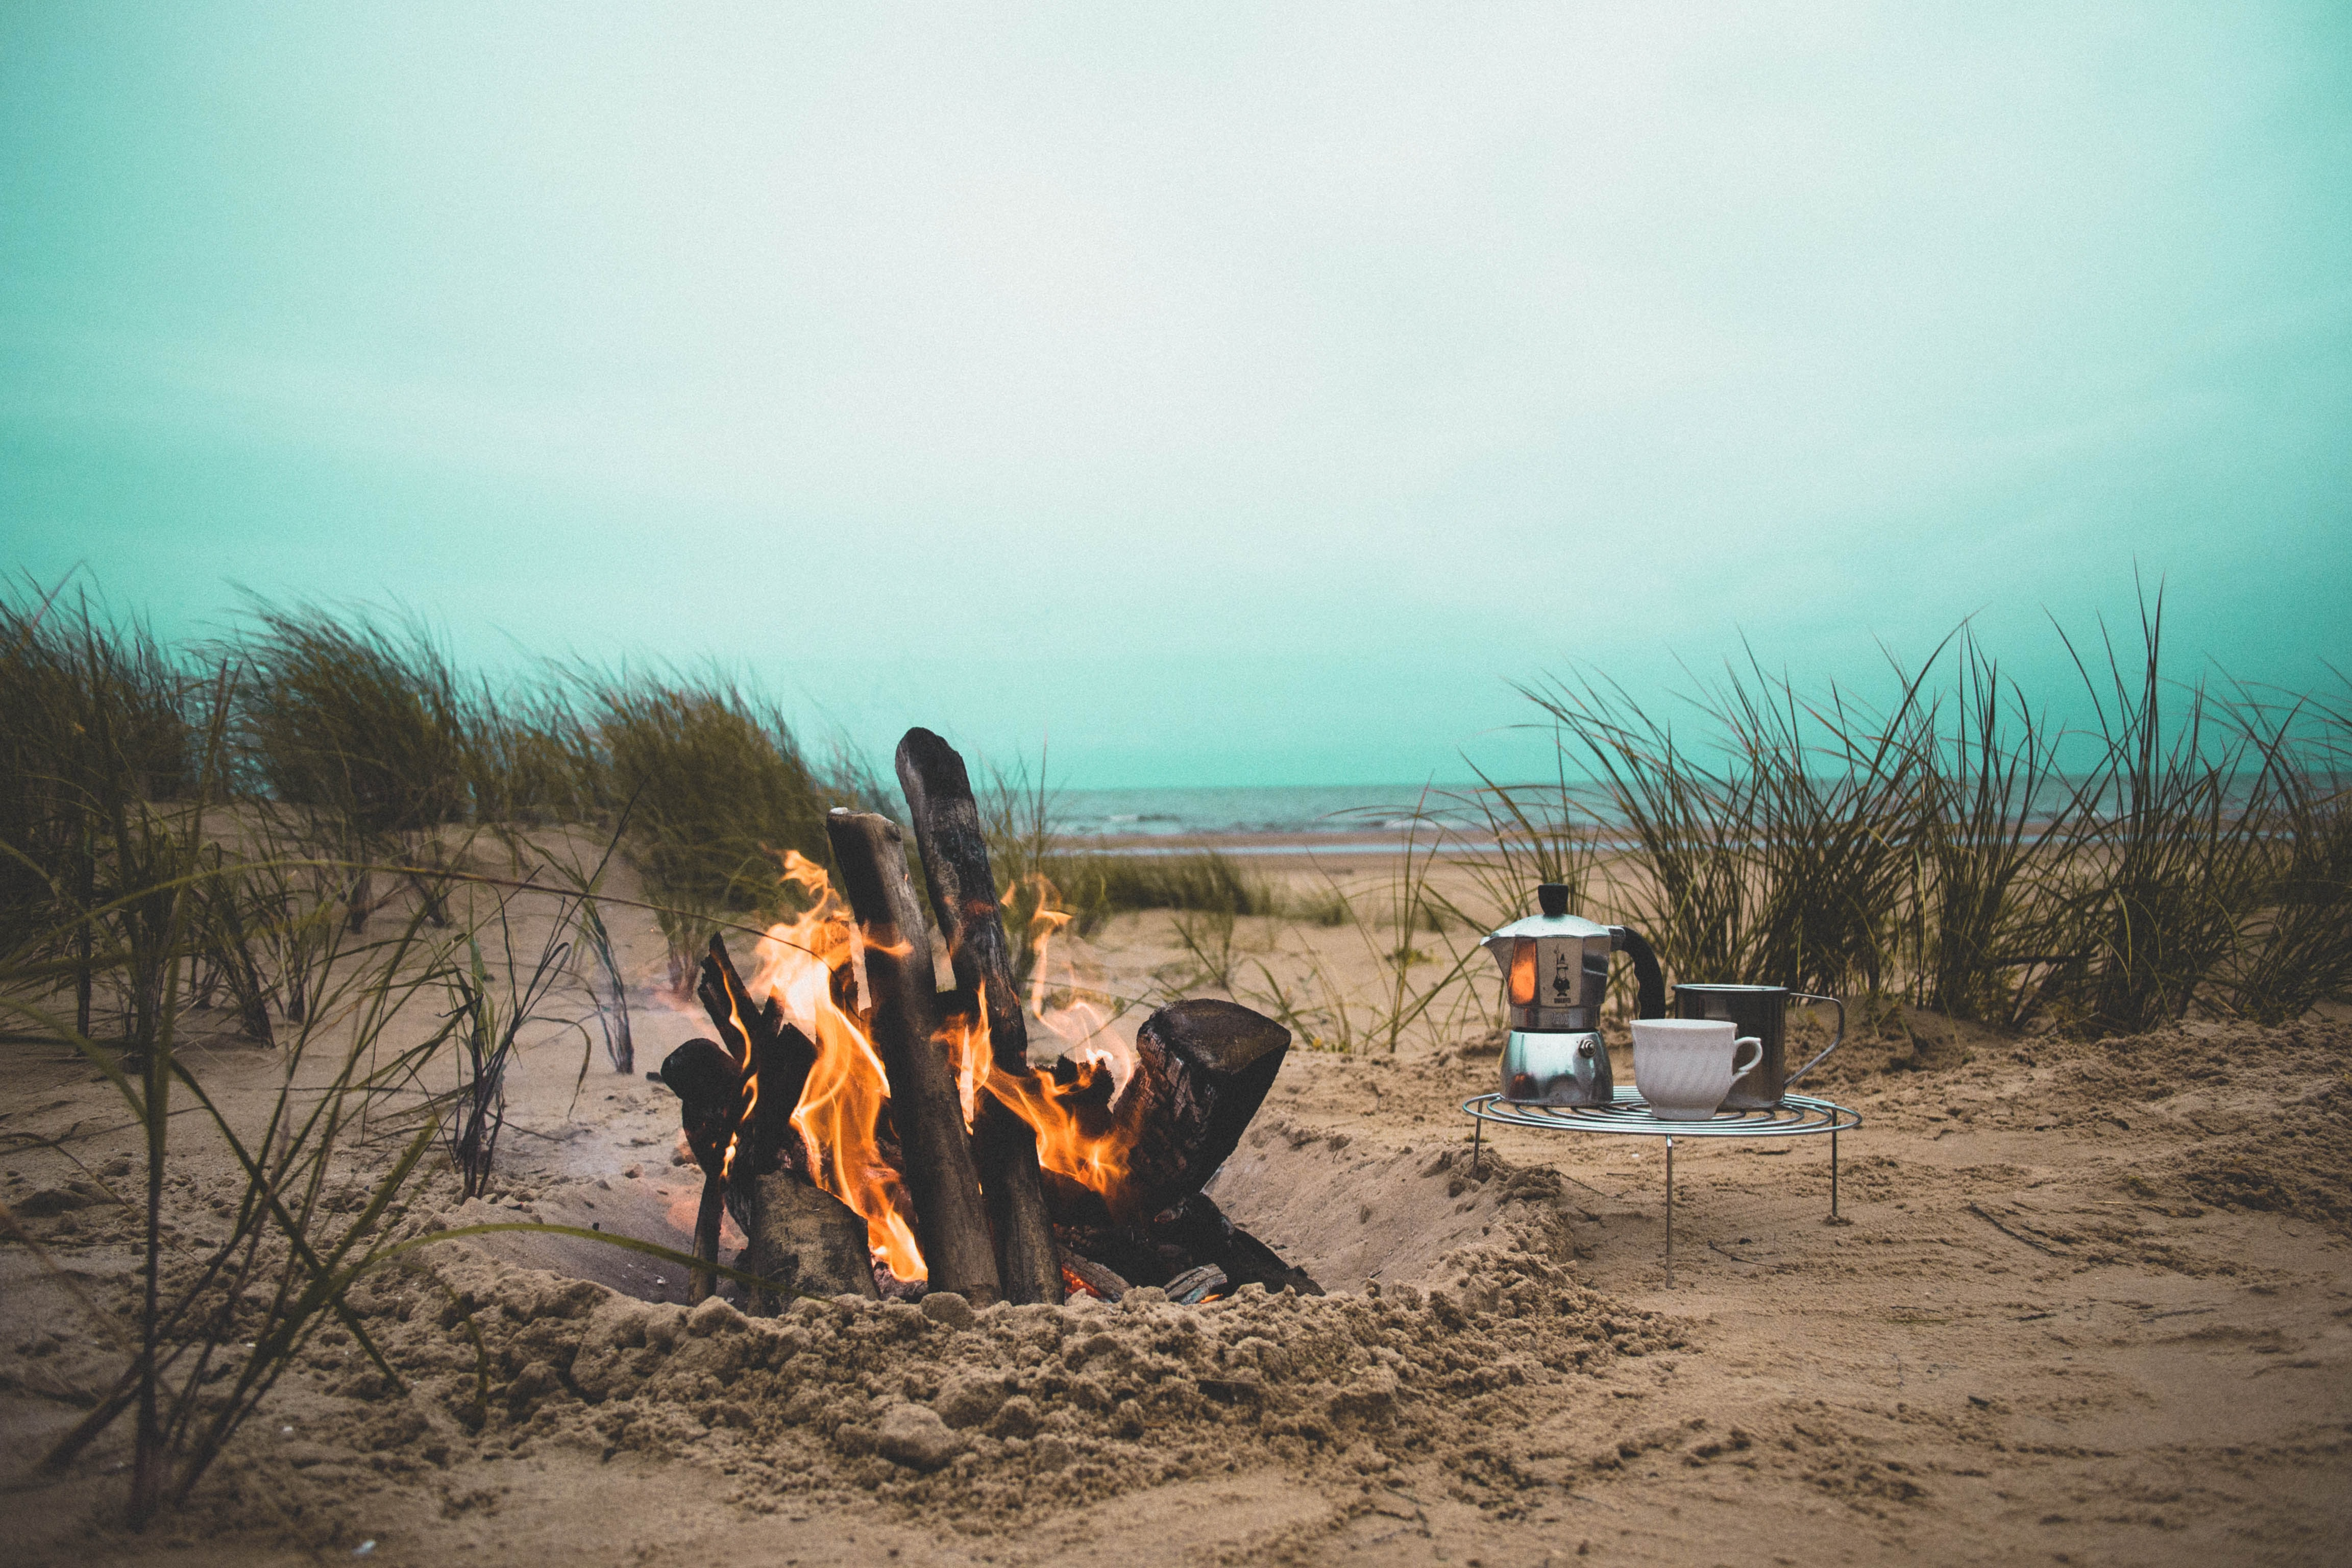 Kettle and a cup on a stand by the large fire in the sand hole